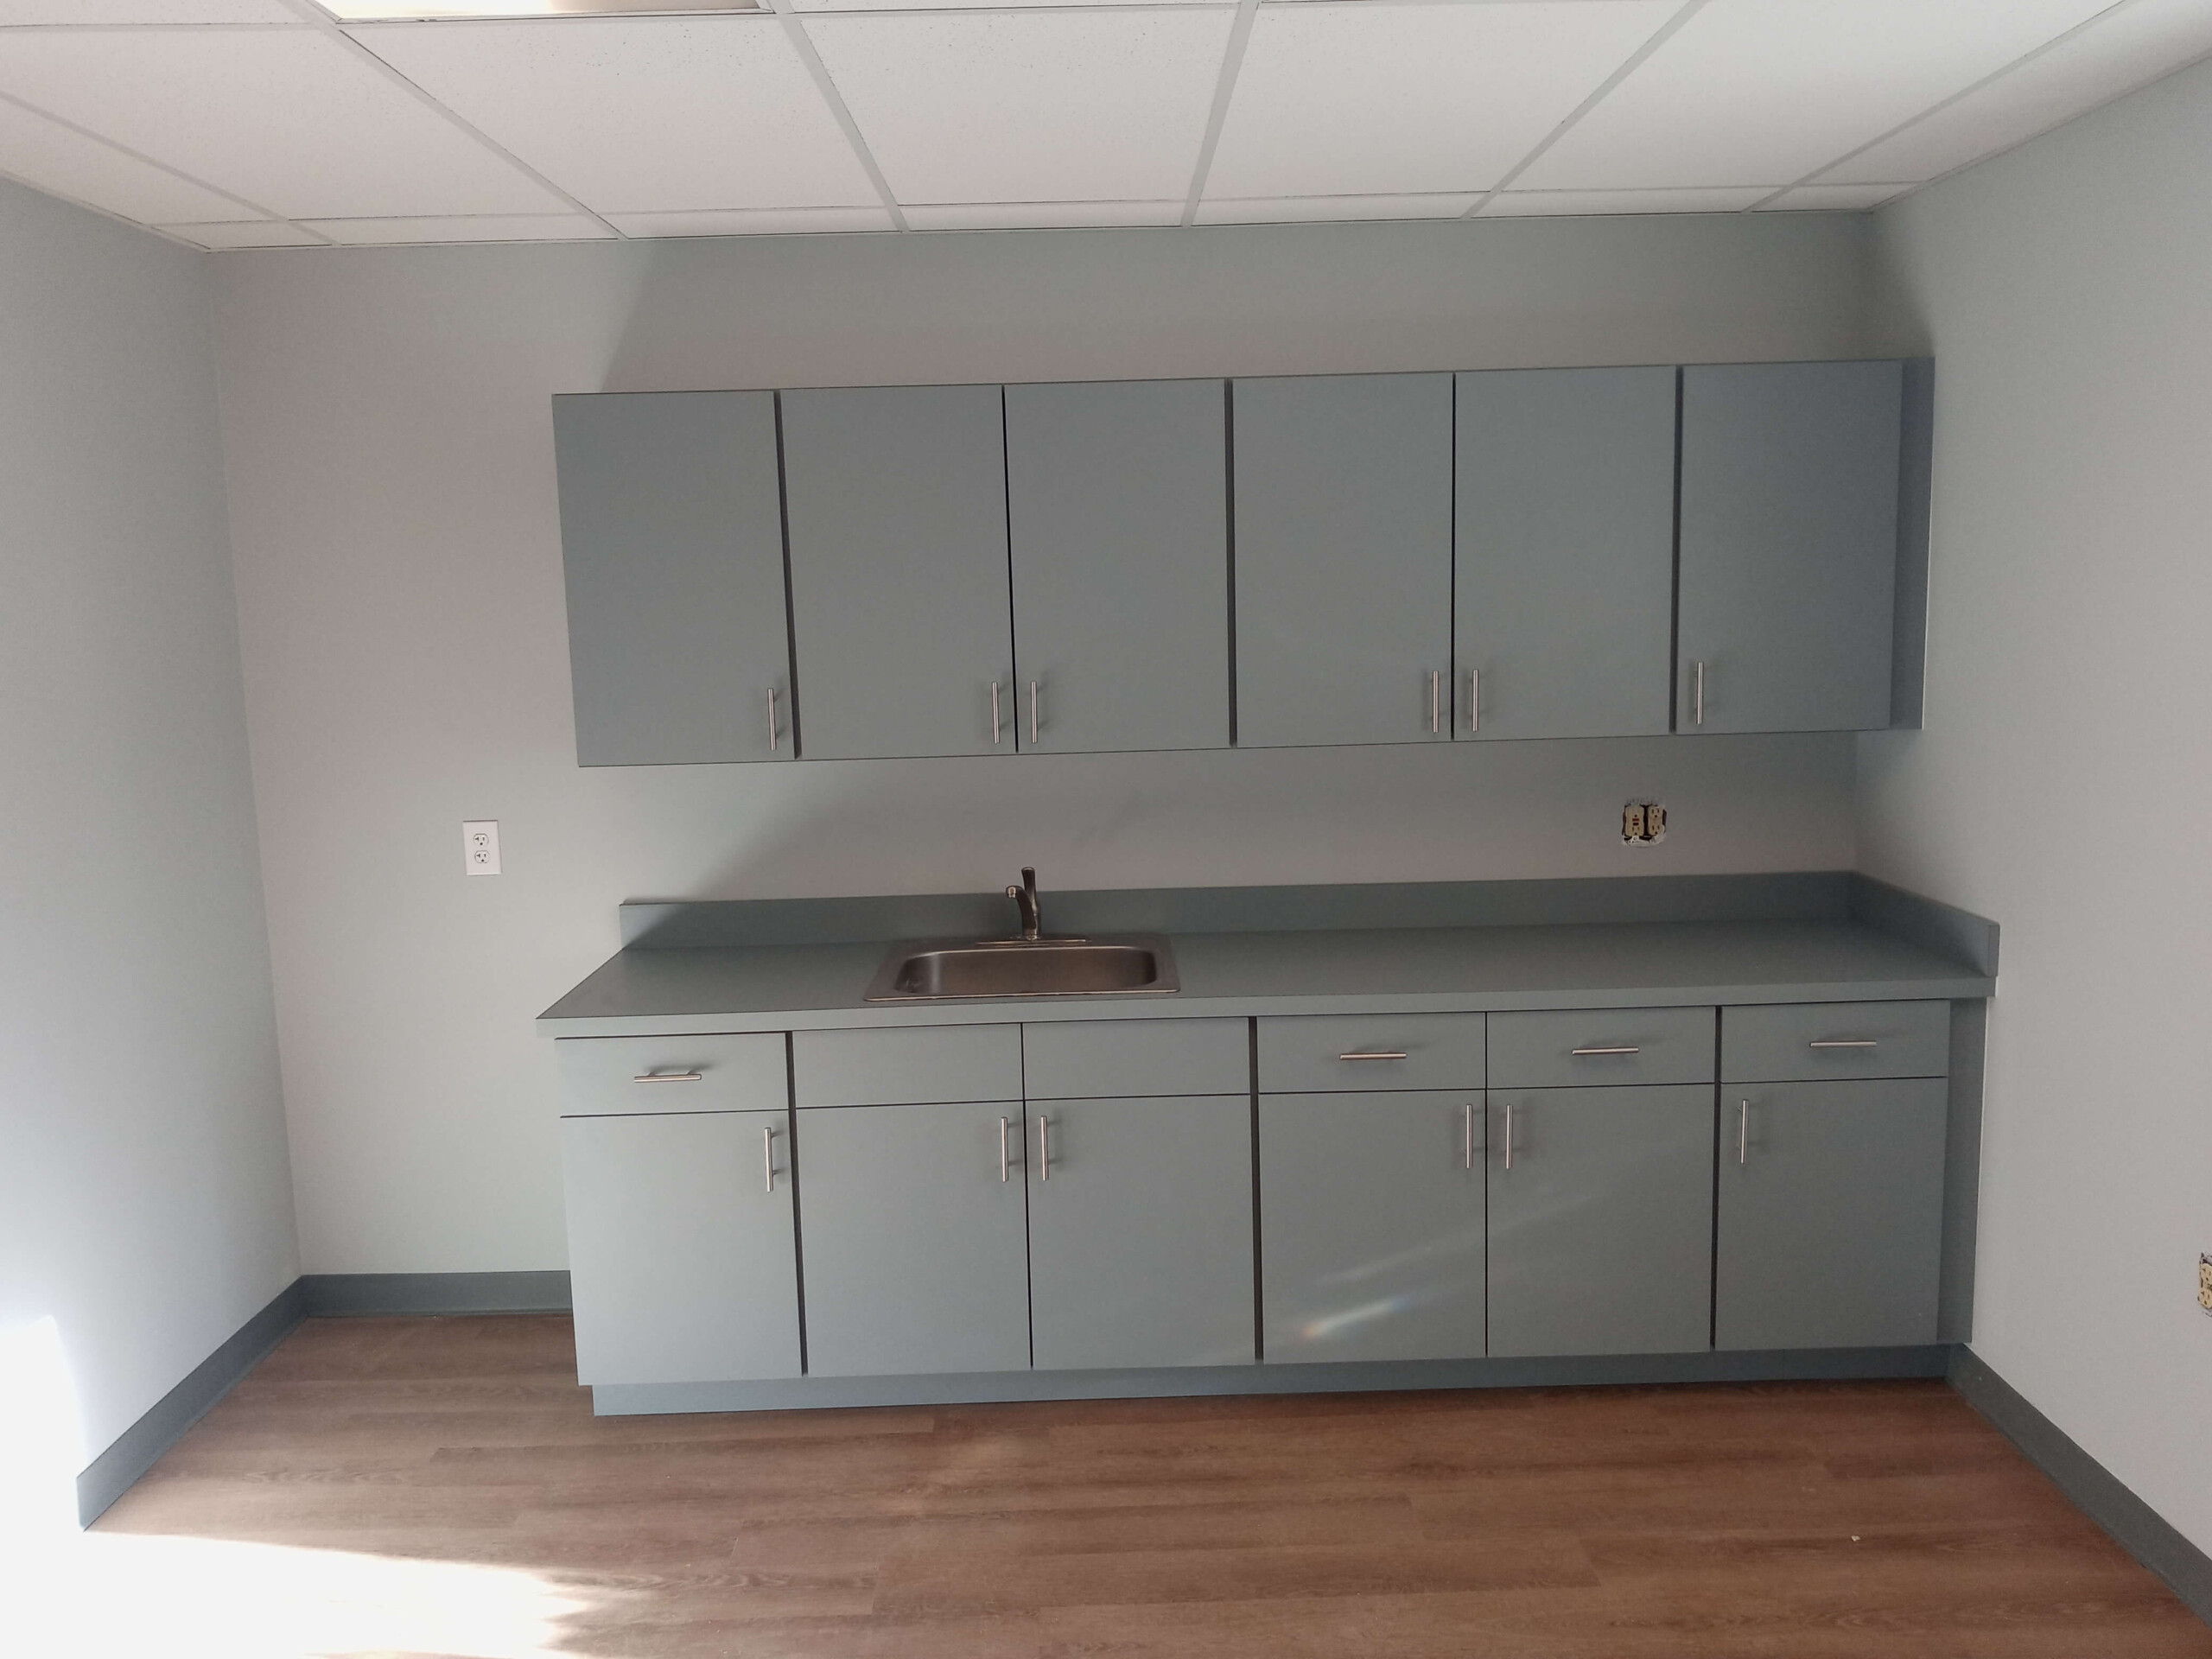 Commerical Cabinets and Countertops in Hamilton, NJ